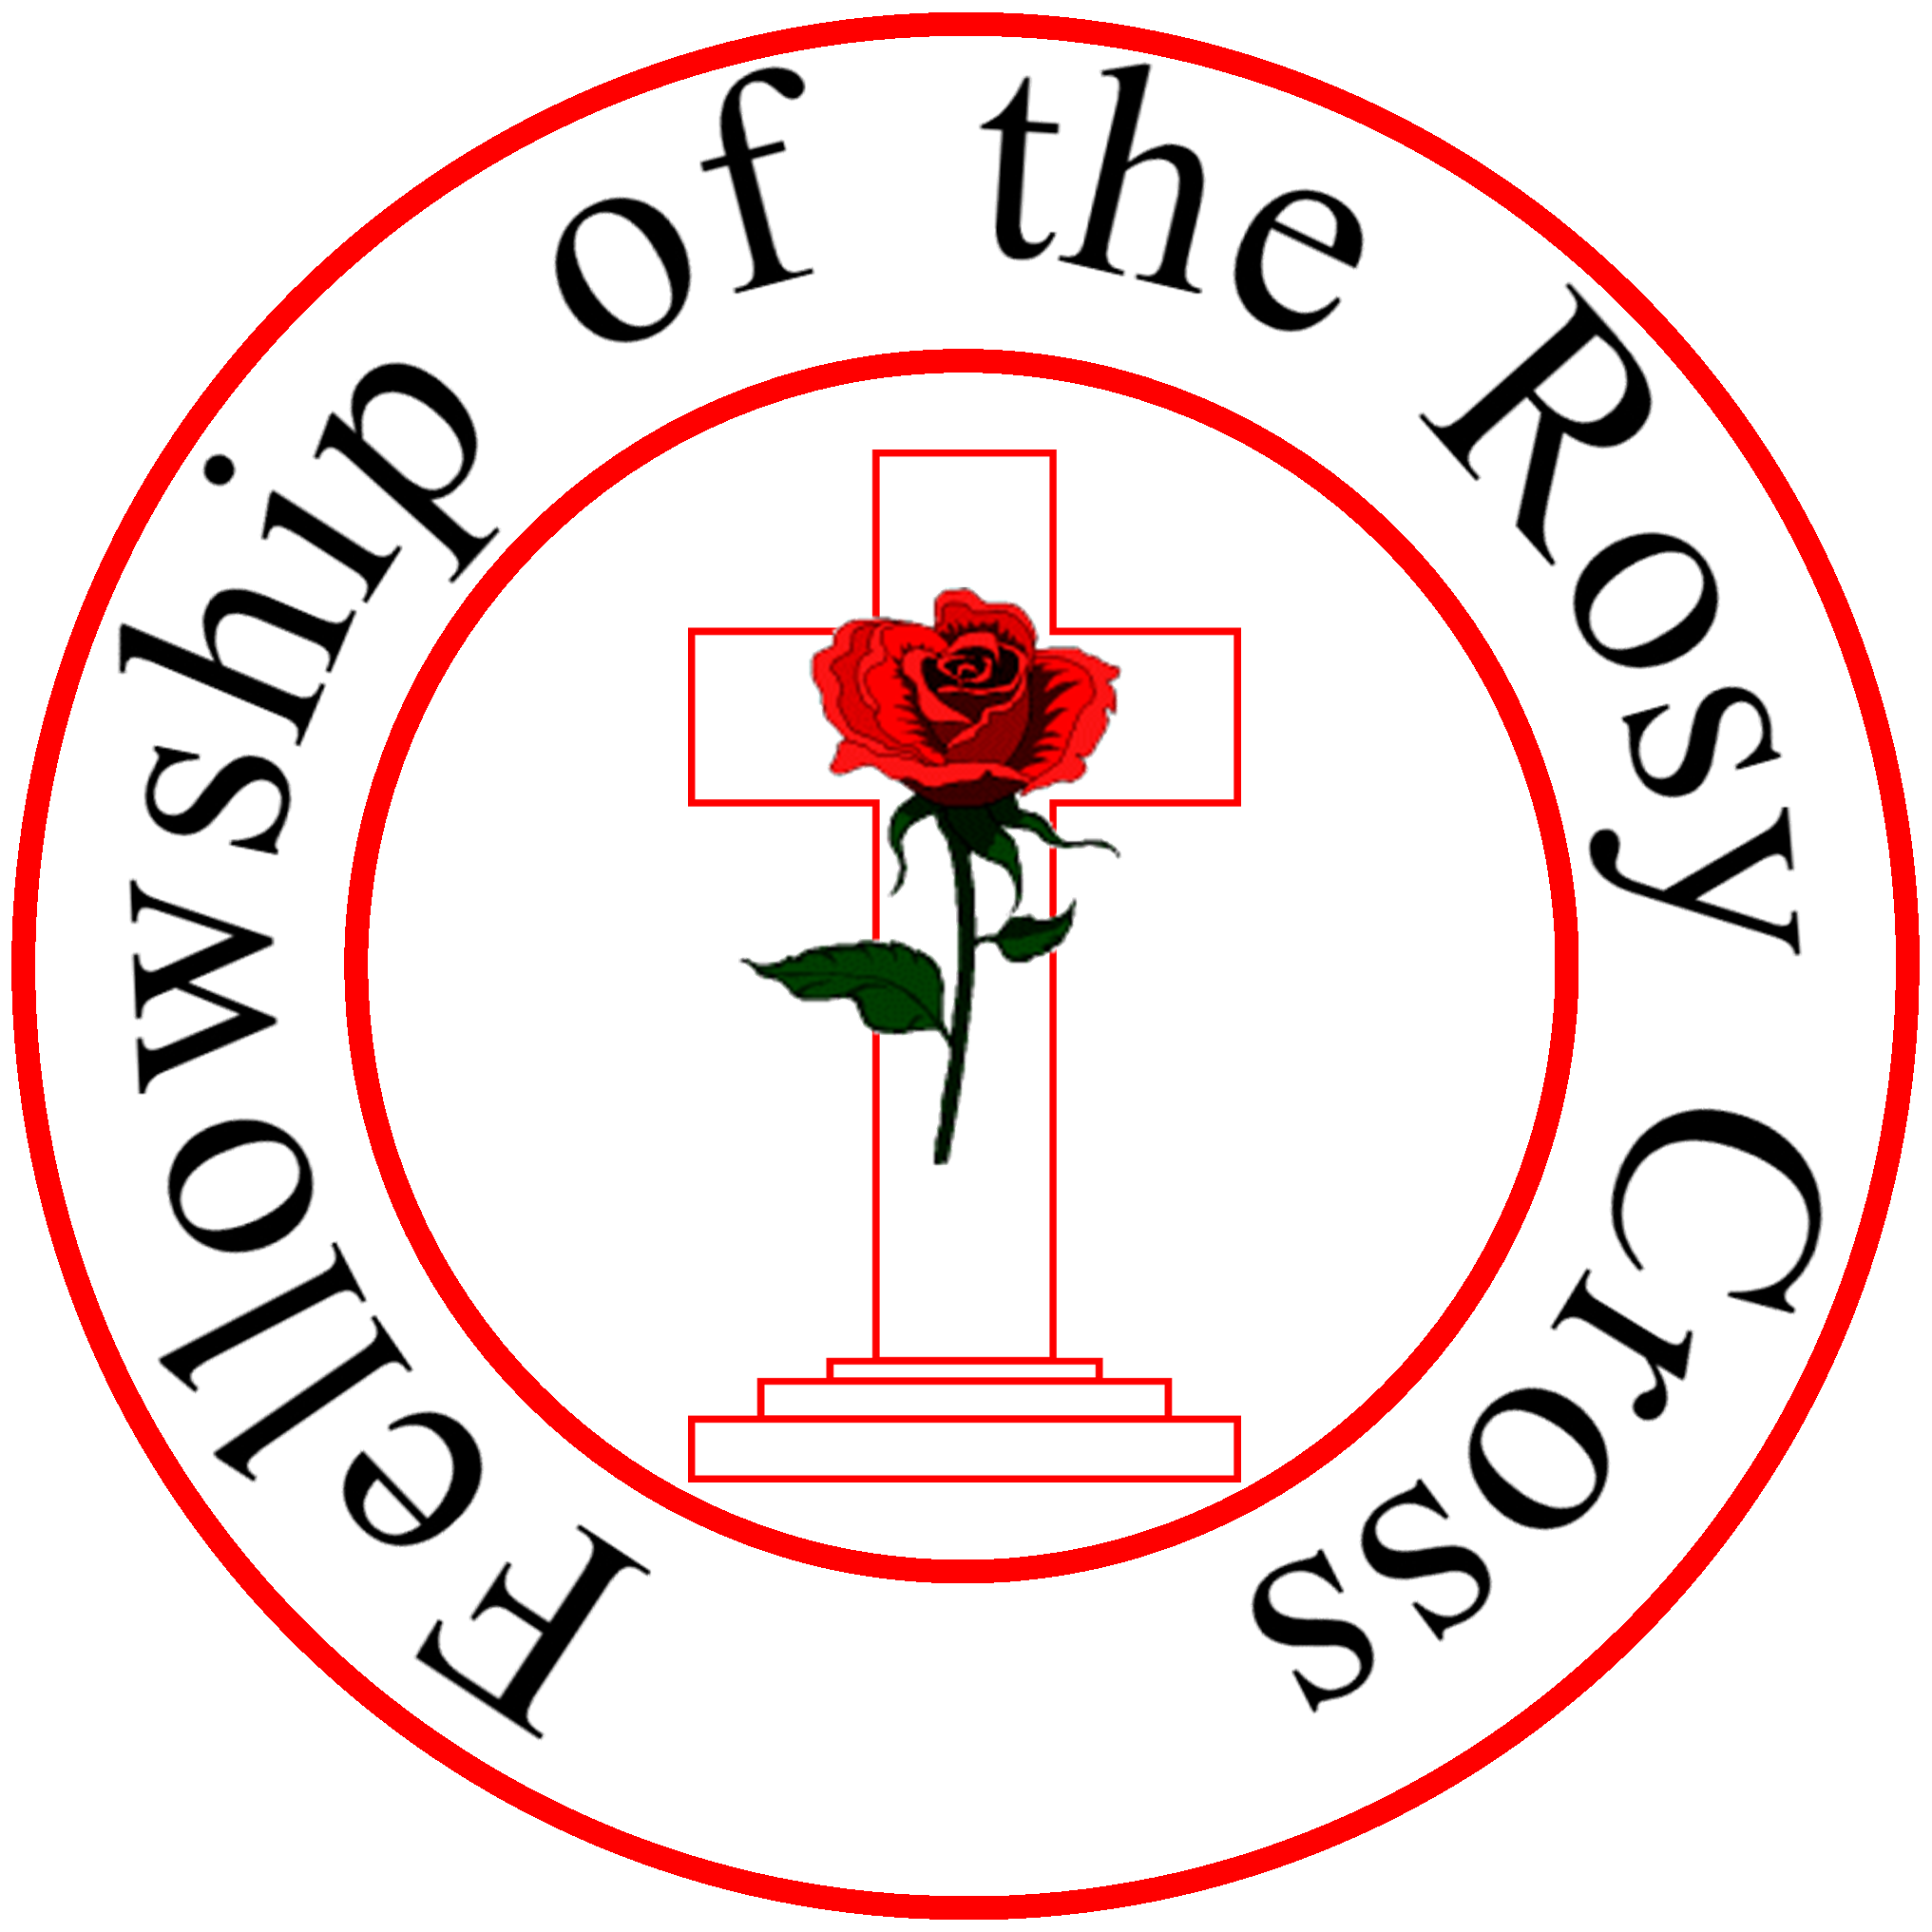 Fellowship of the and. Clipart rose cross